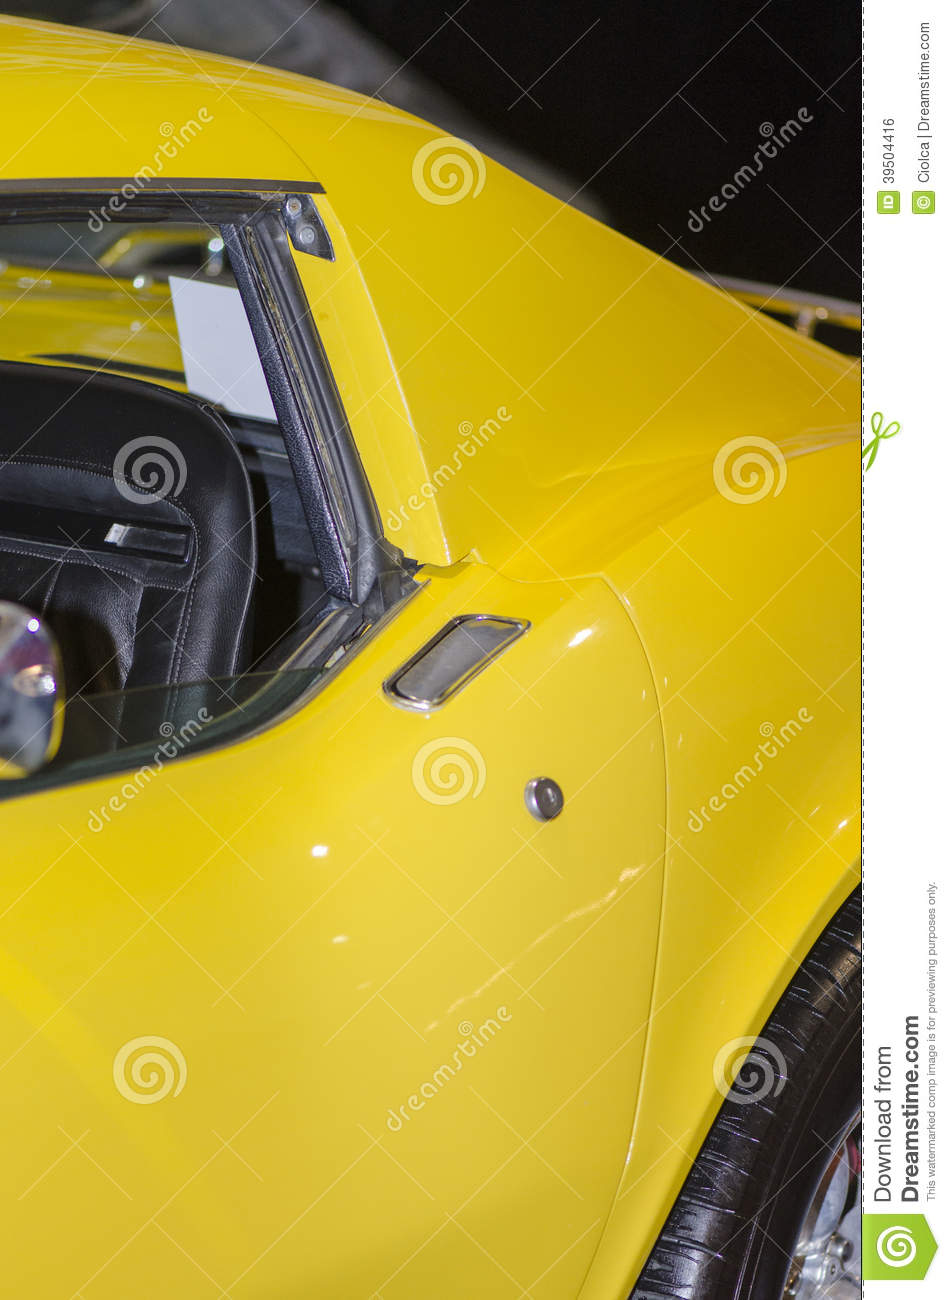 Vintage yellow sports car